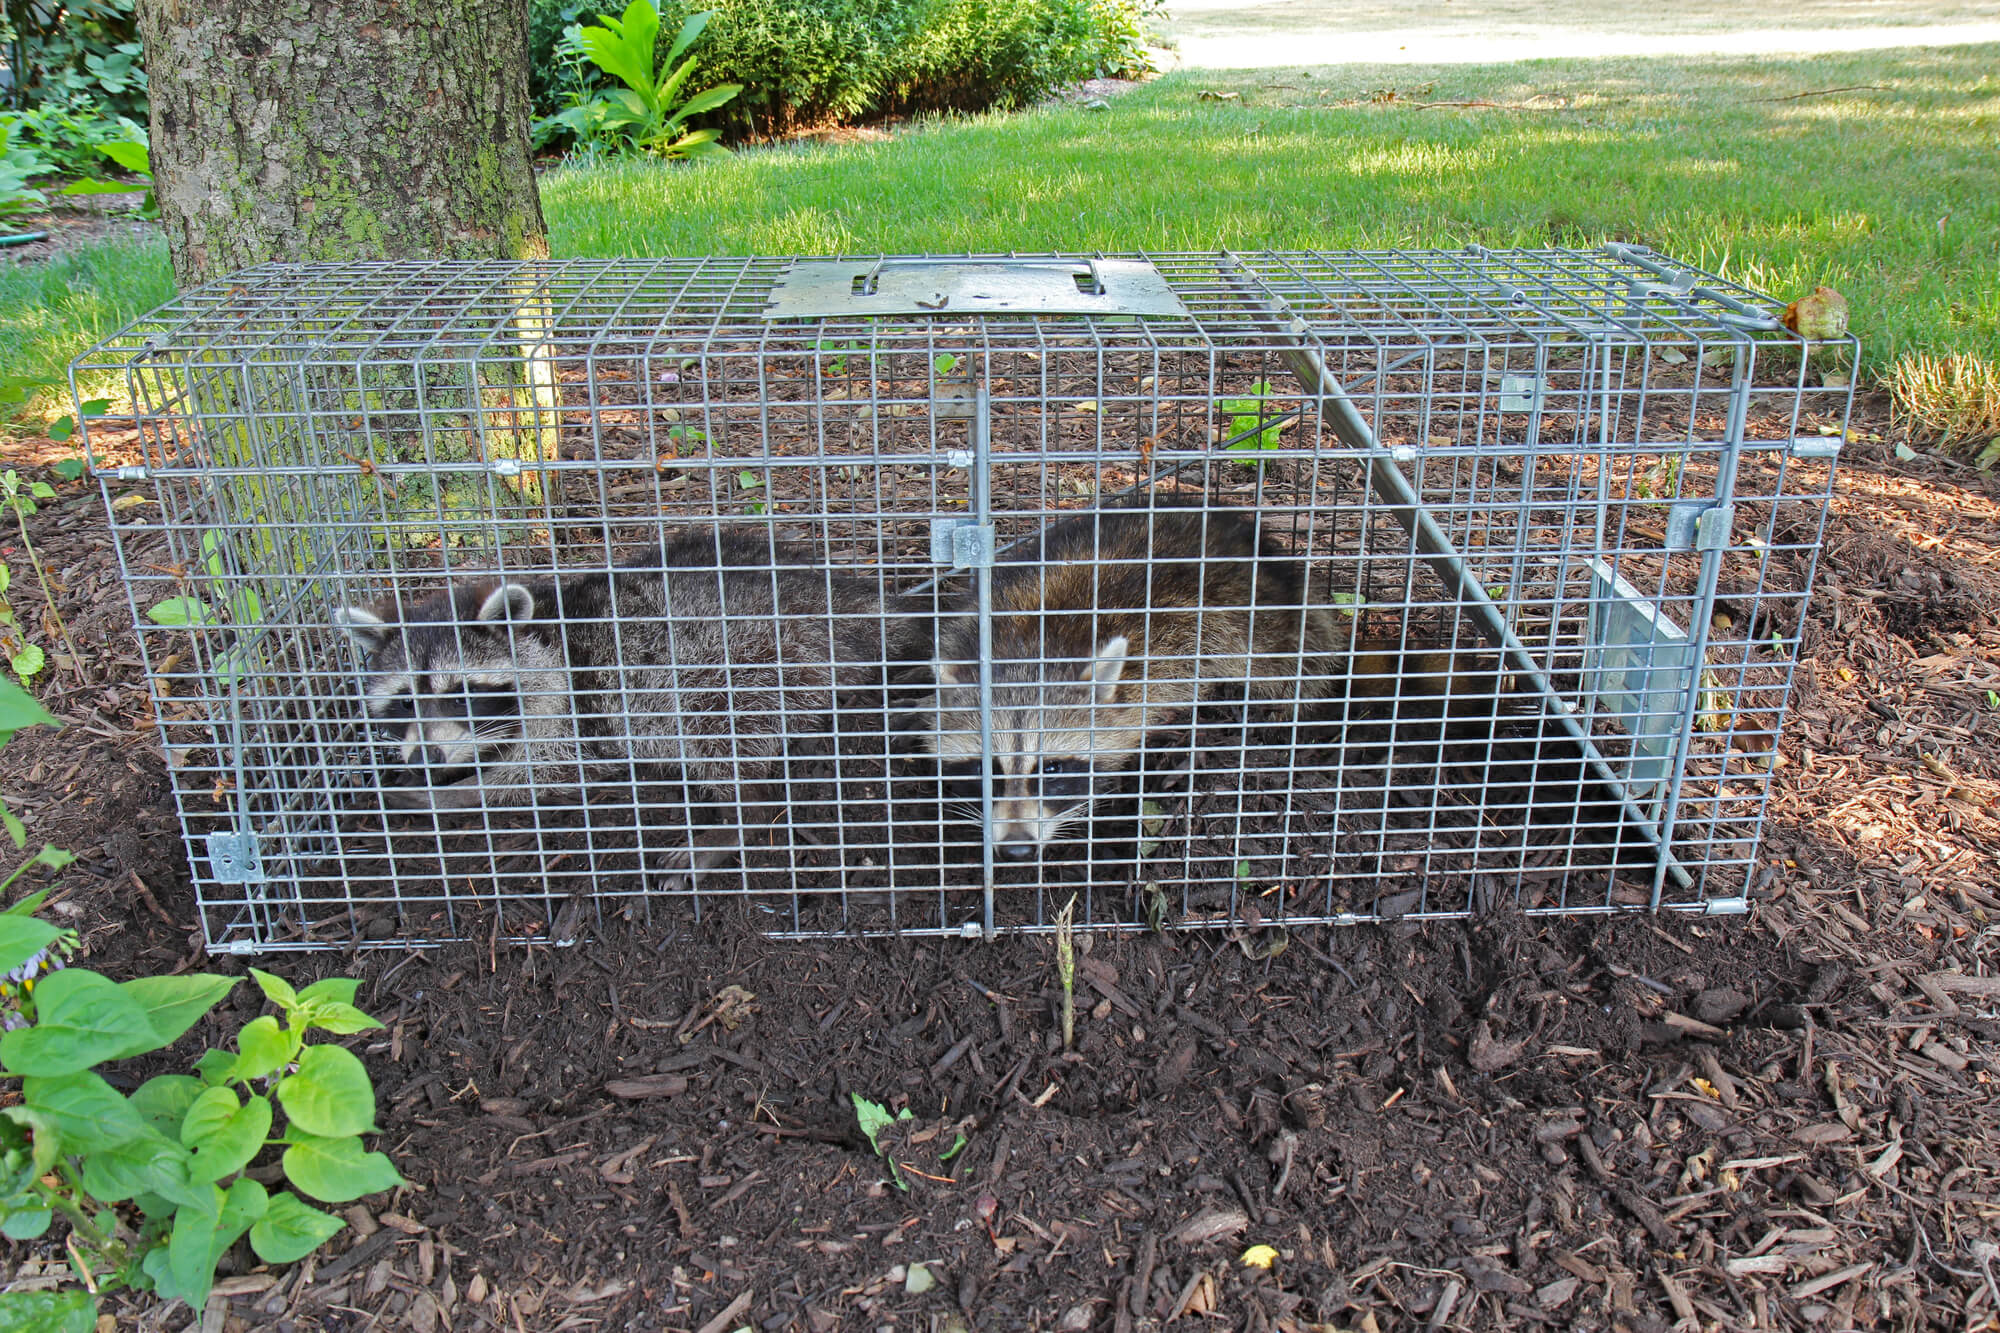 Image of Two small American raccoons caught in a live trap in a homeowners back yard